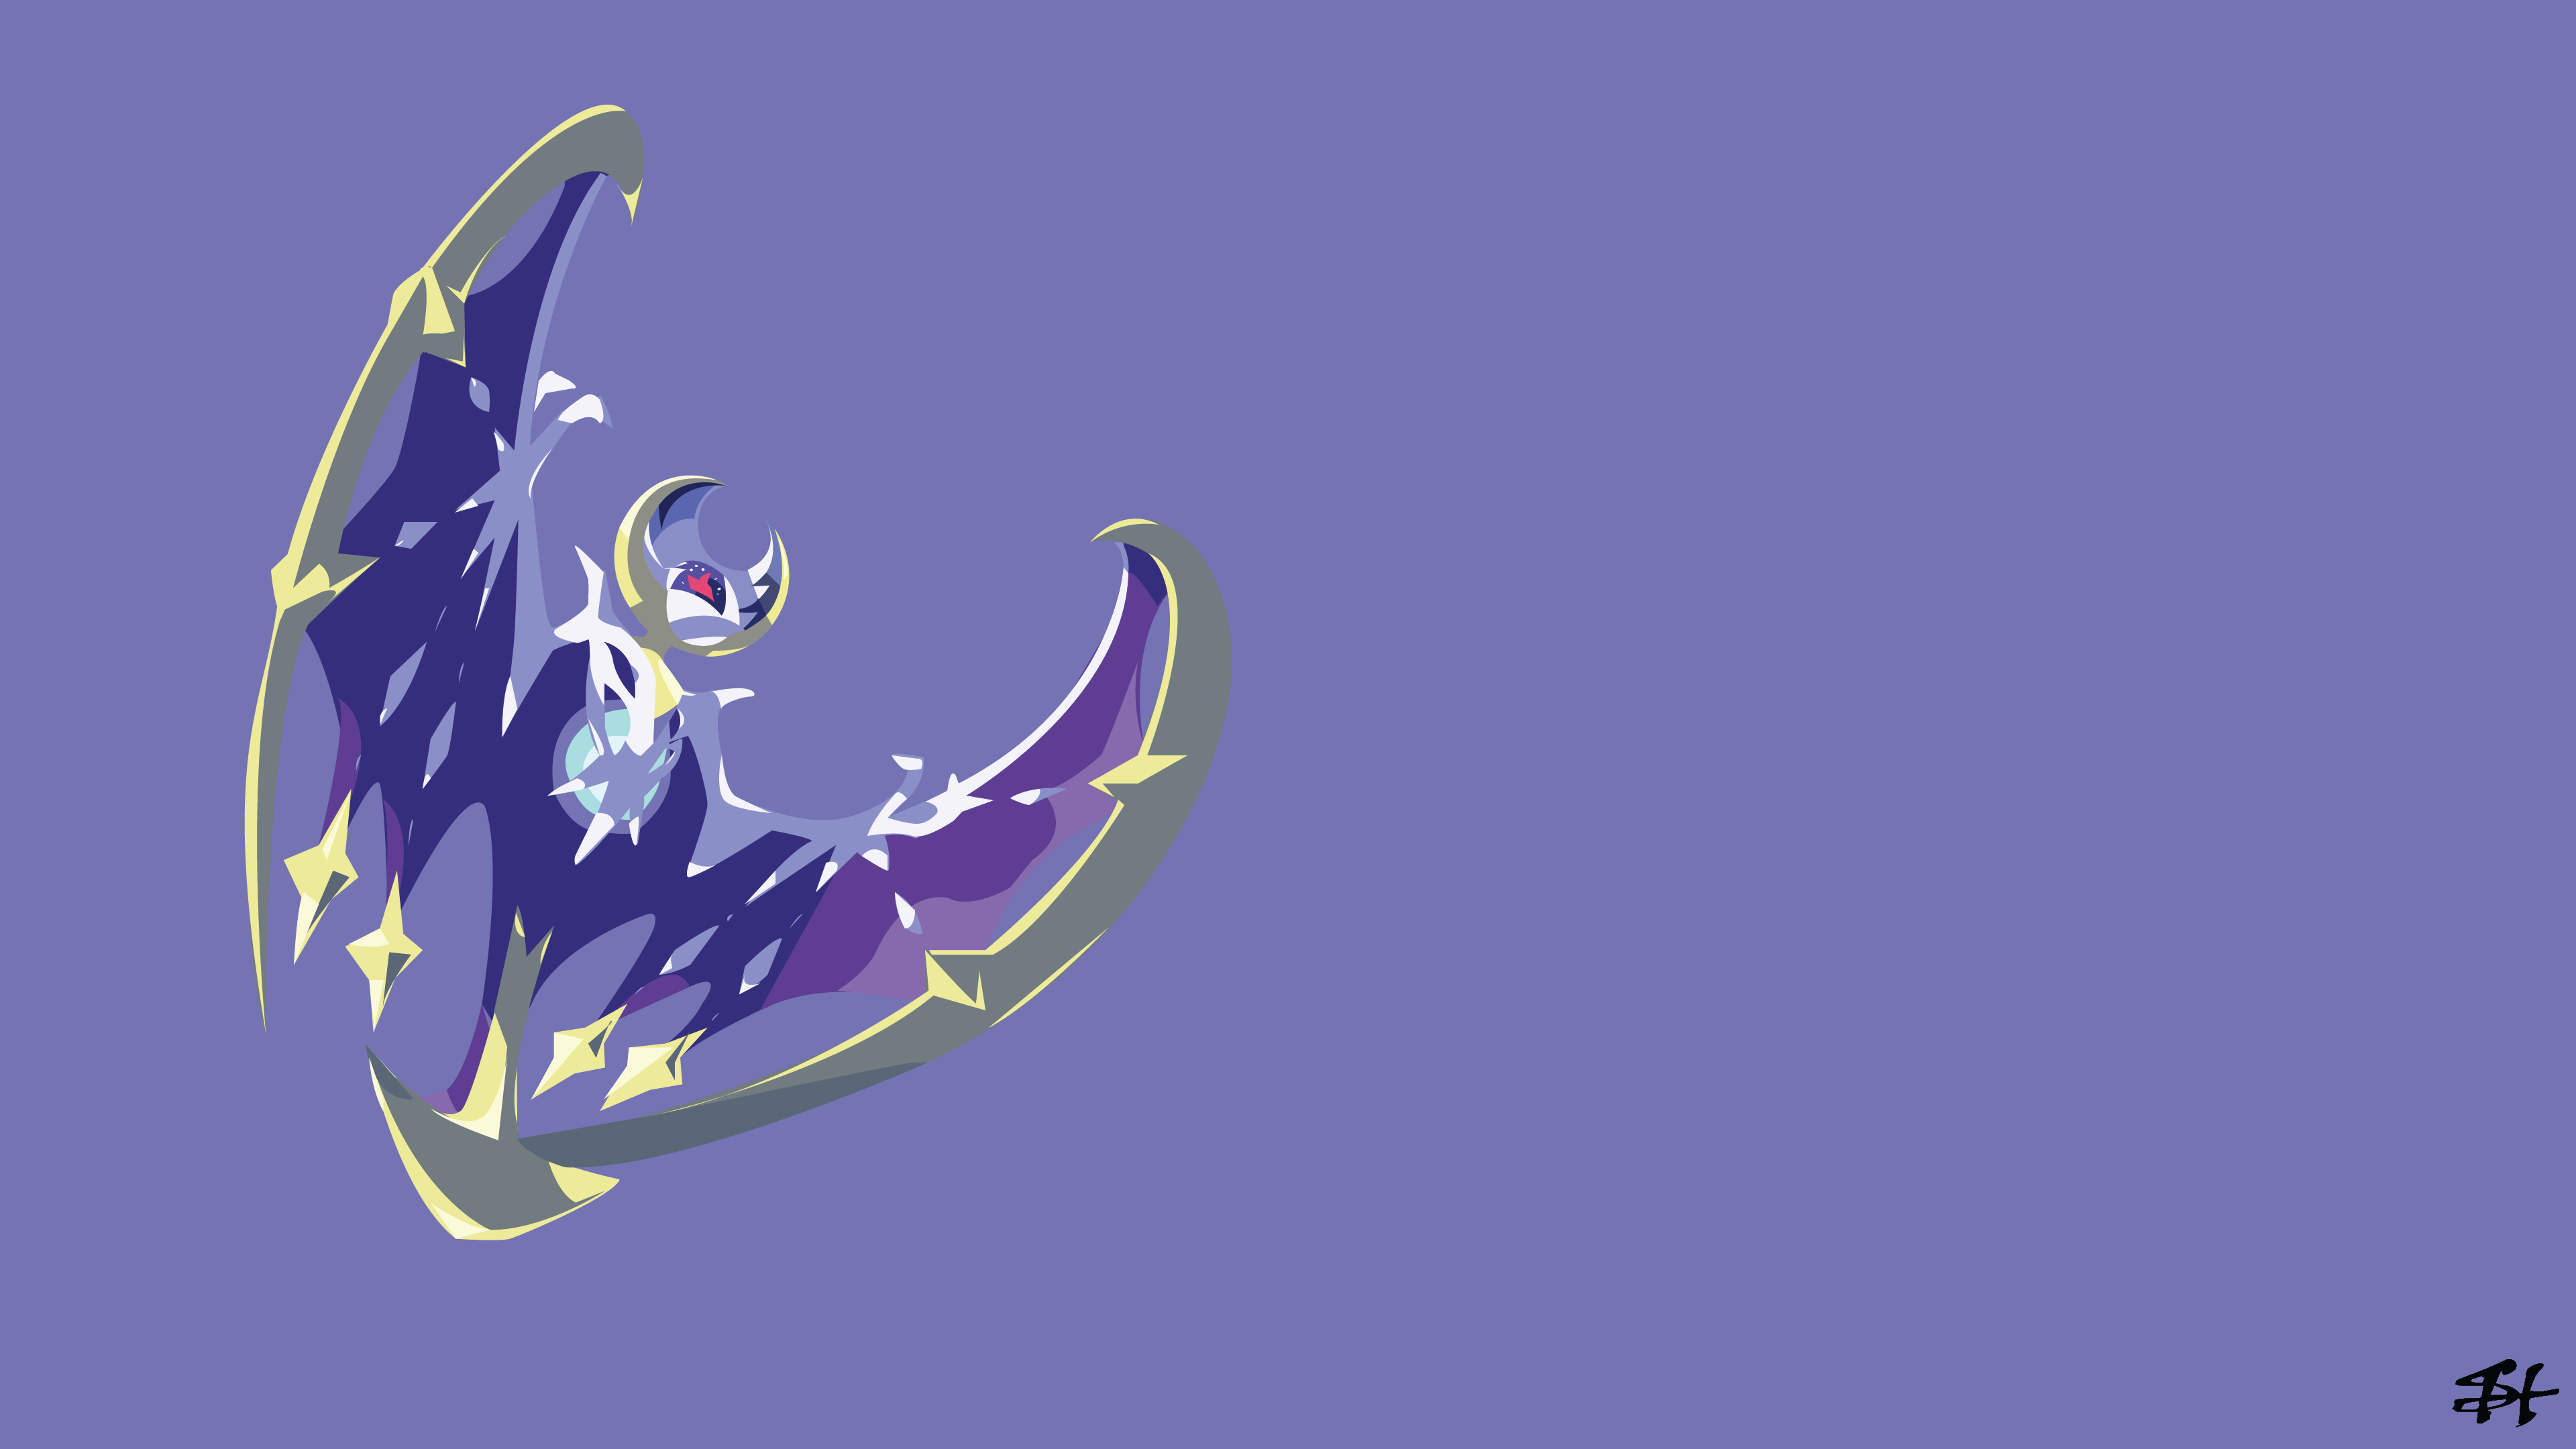 Pokemon Sun And Moon Wallpaper: Lunala 4k Ultra HD Wallpaper And Background Image